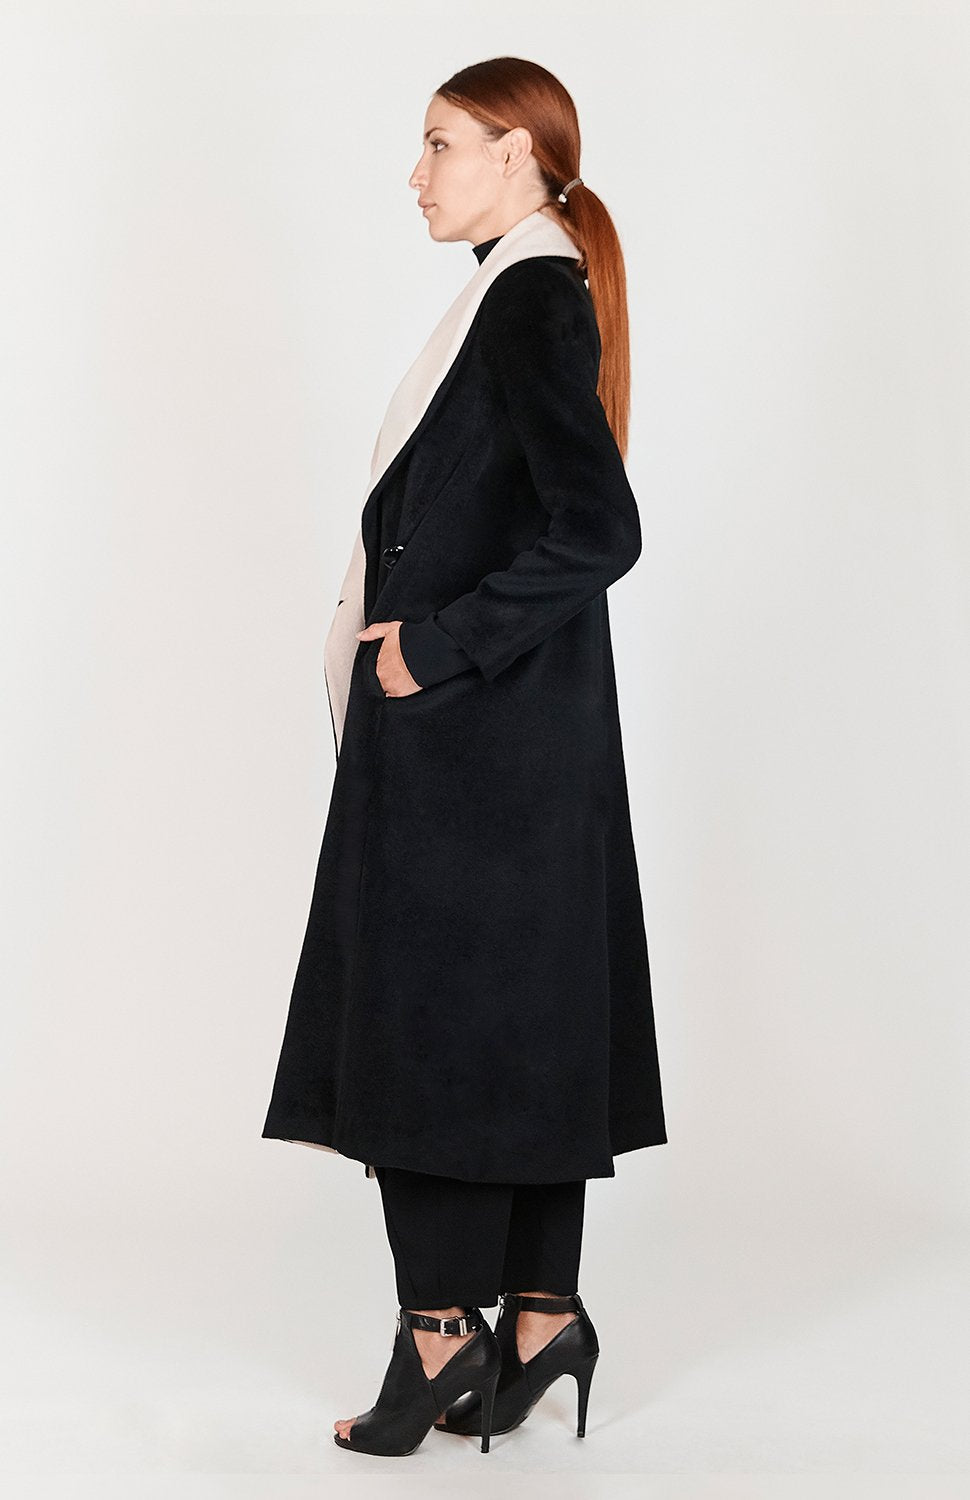 Mi Jong Lee Long Draped Collar Coat - Capsule 2